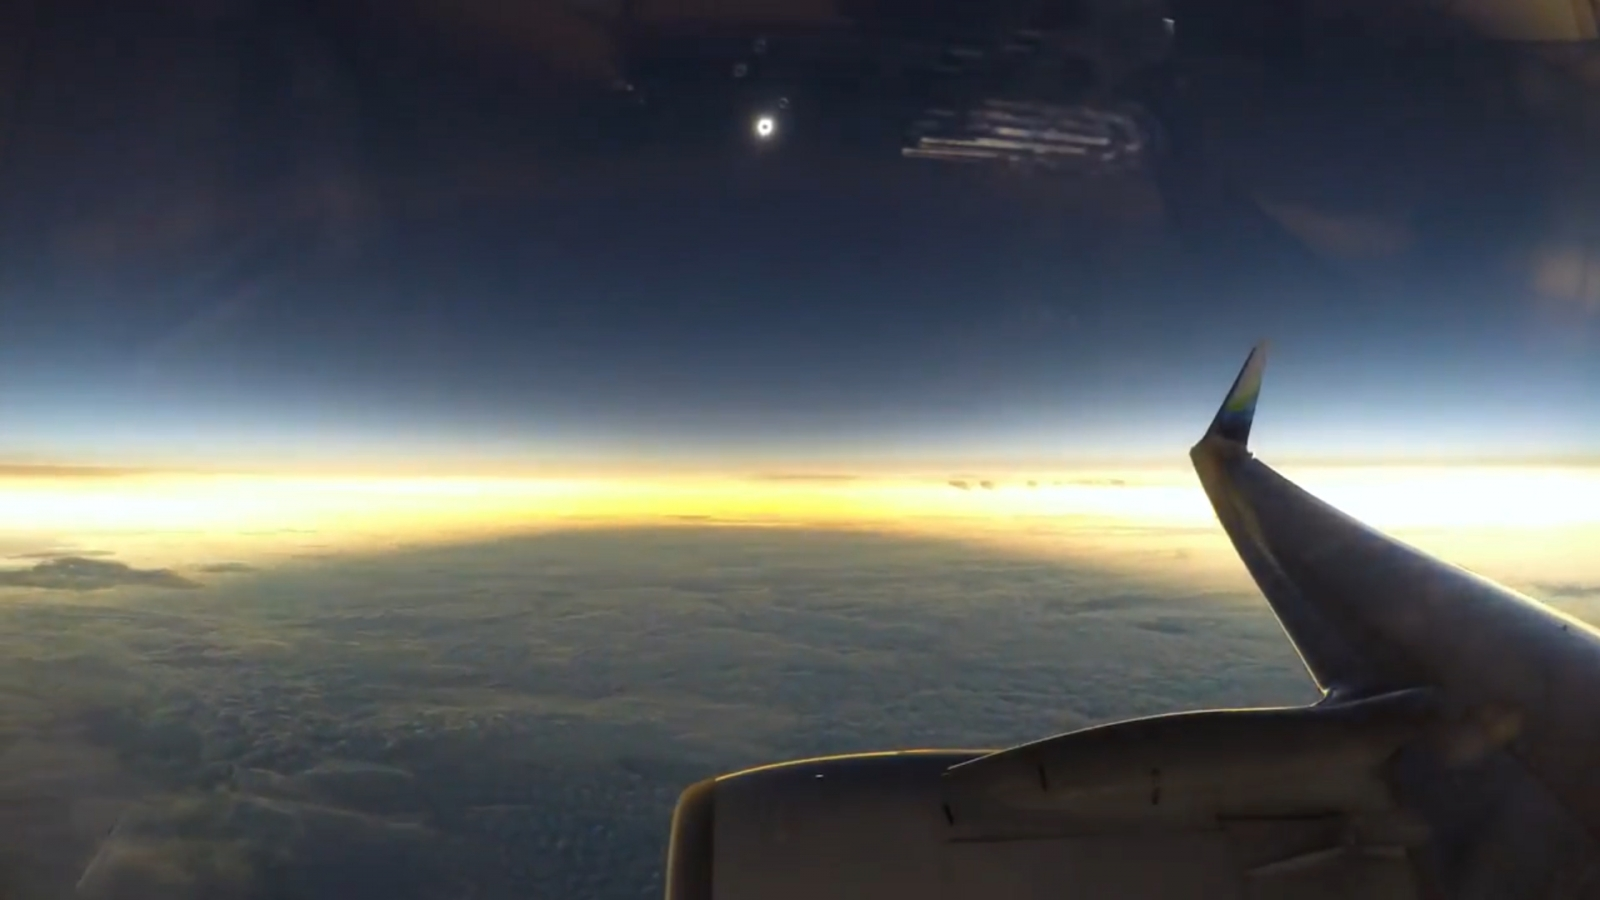 stunning-mid-flight-video-captures-moment-total-solar-eclipse-plunges-earth-into-darkness